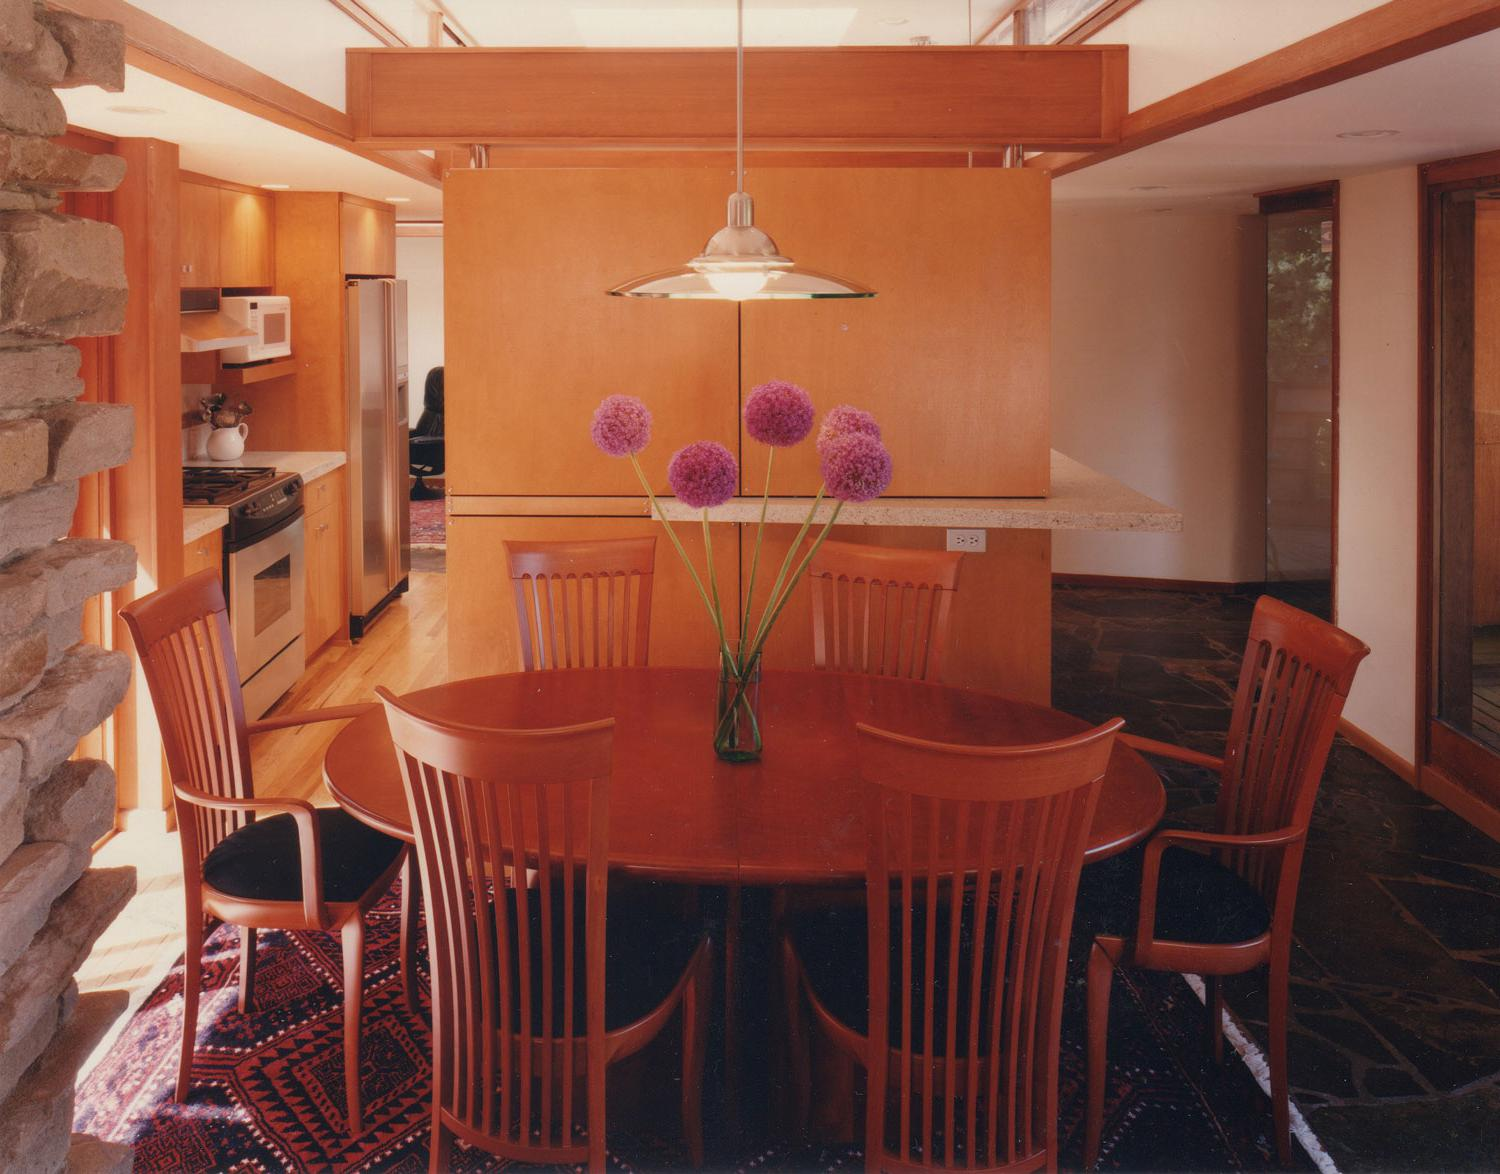 Prairie Style Remodel - Seattle Architects - 必威betway中文版 - middle century, Remodel